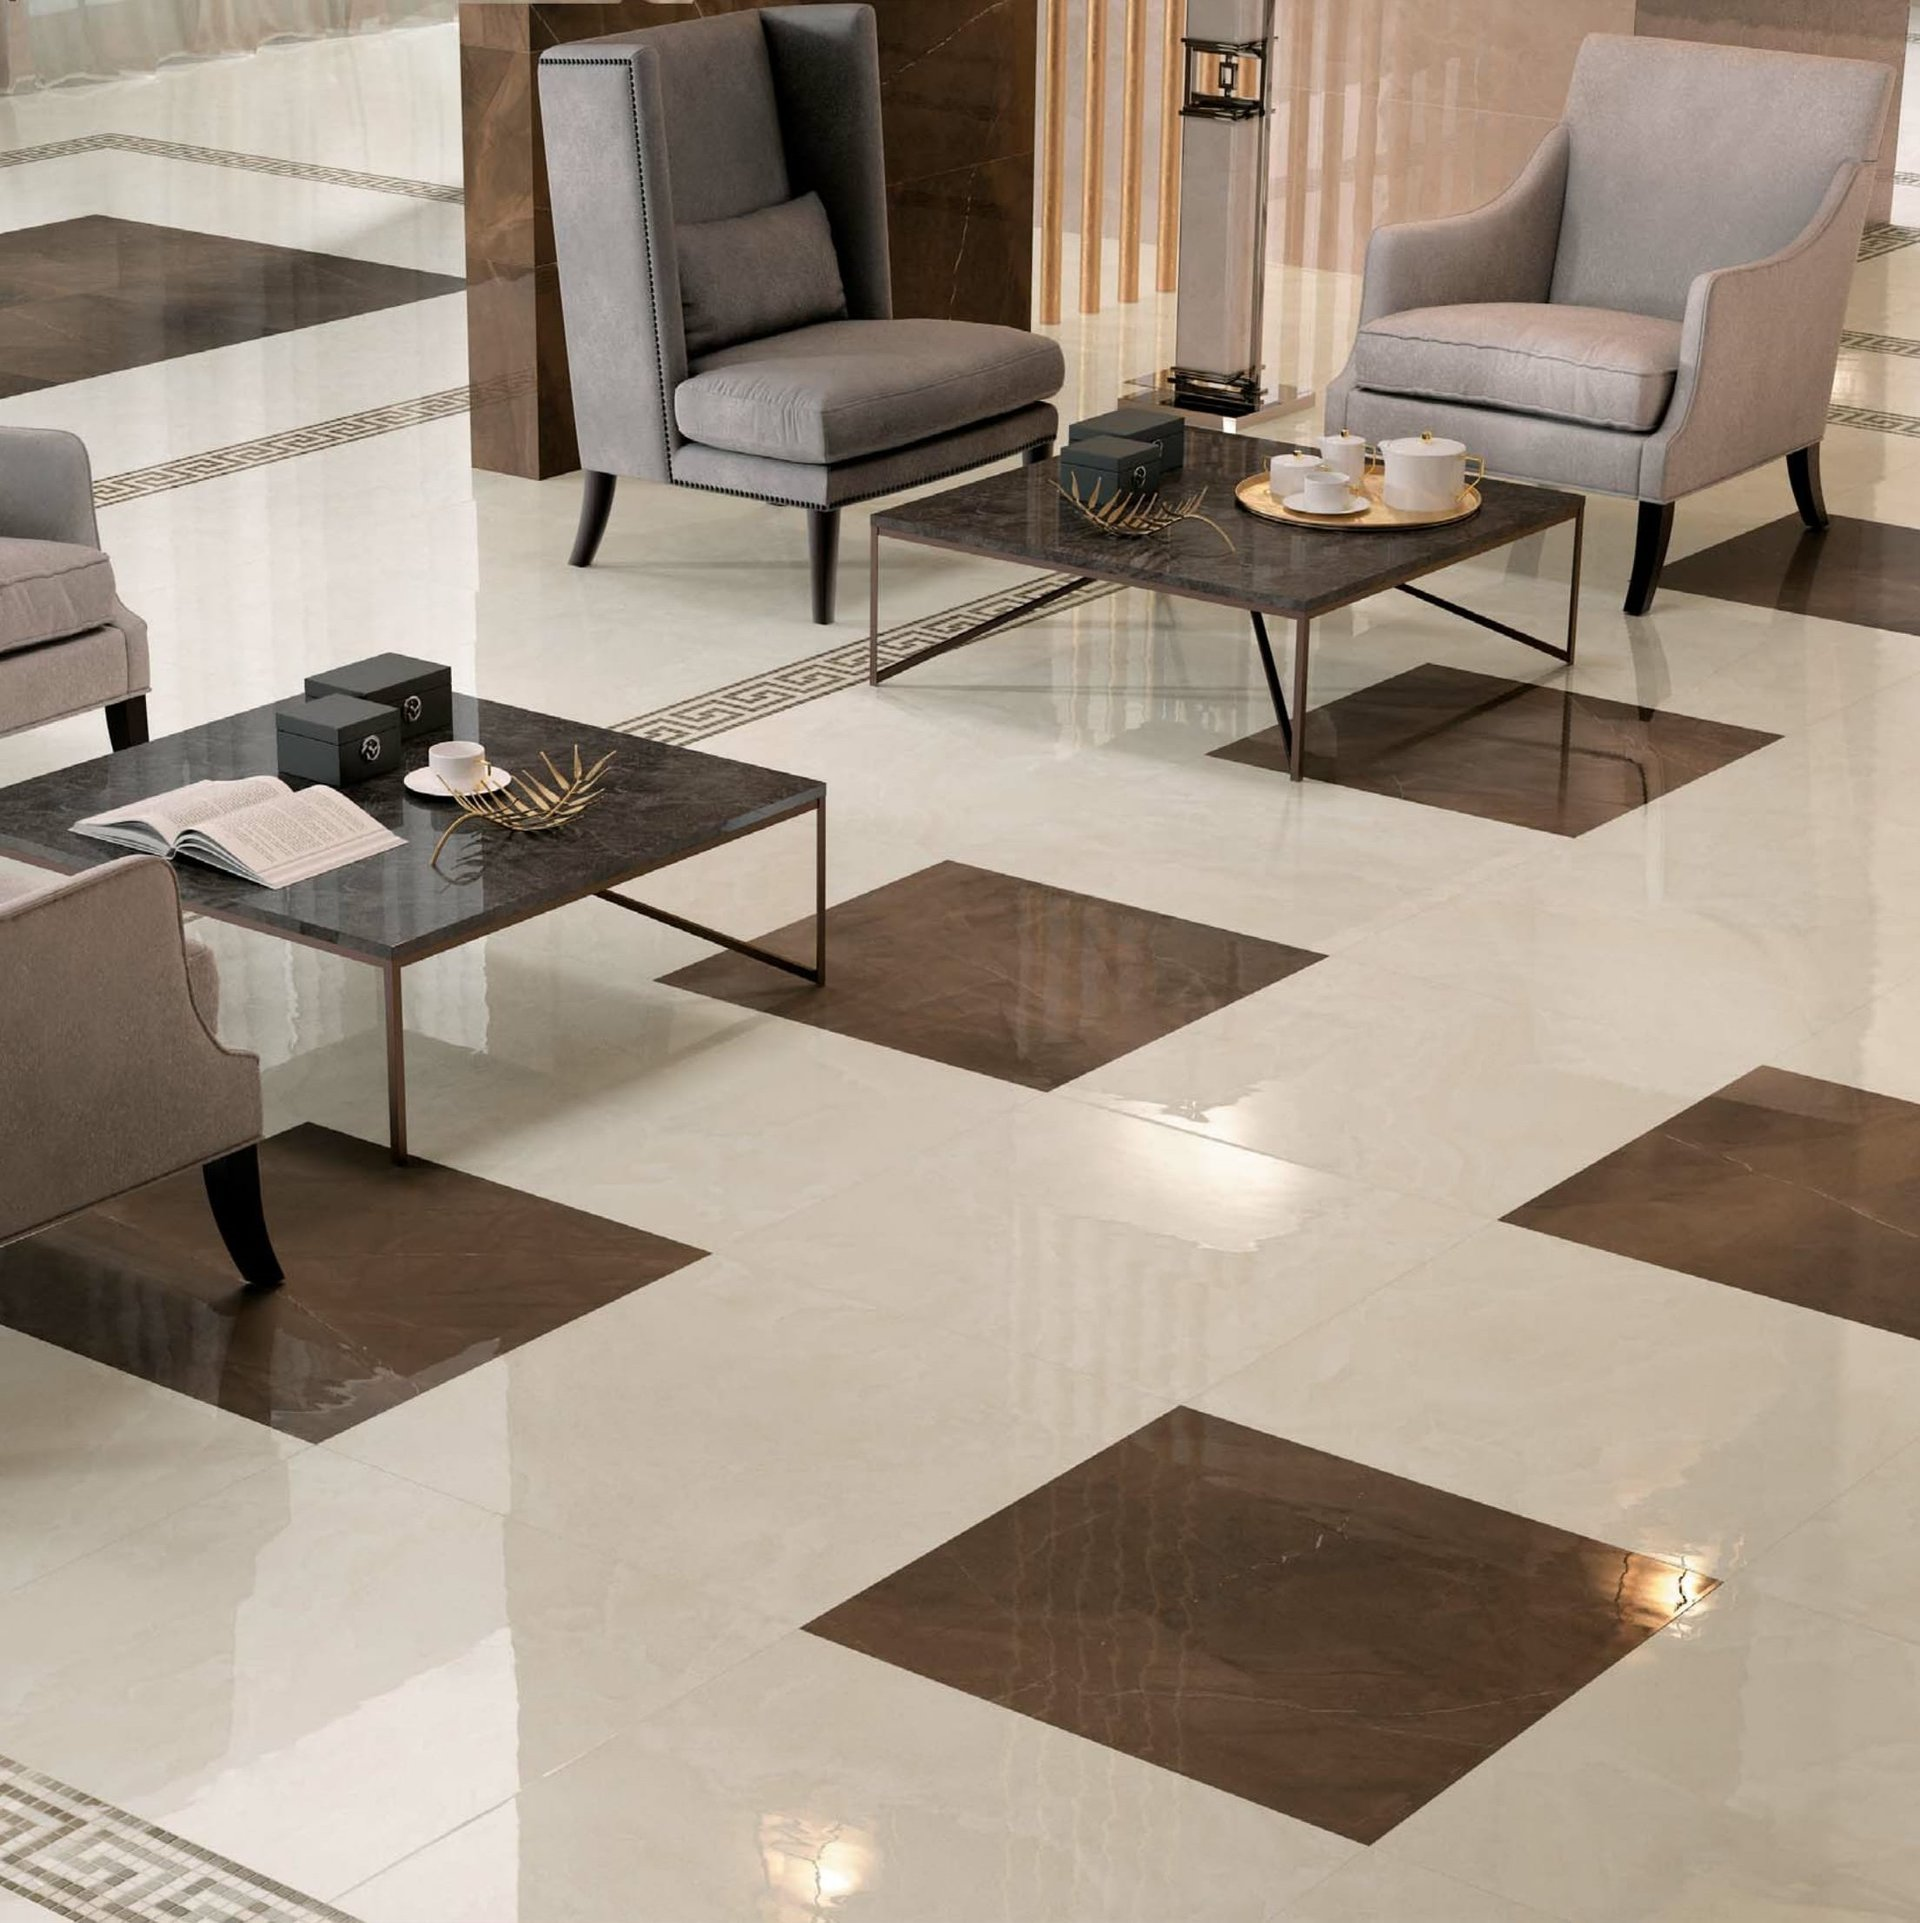 Indoor outdoor tile cairns marlin ceramic tiles slide title dailygadgetfo Choice Image